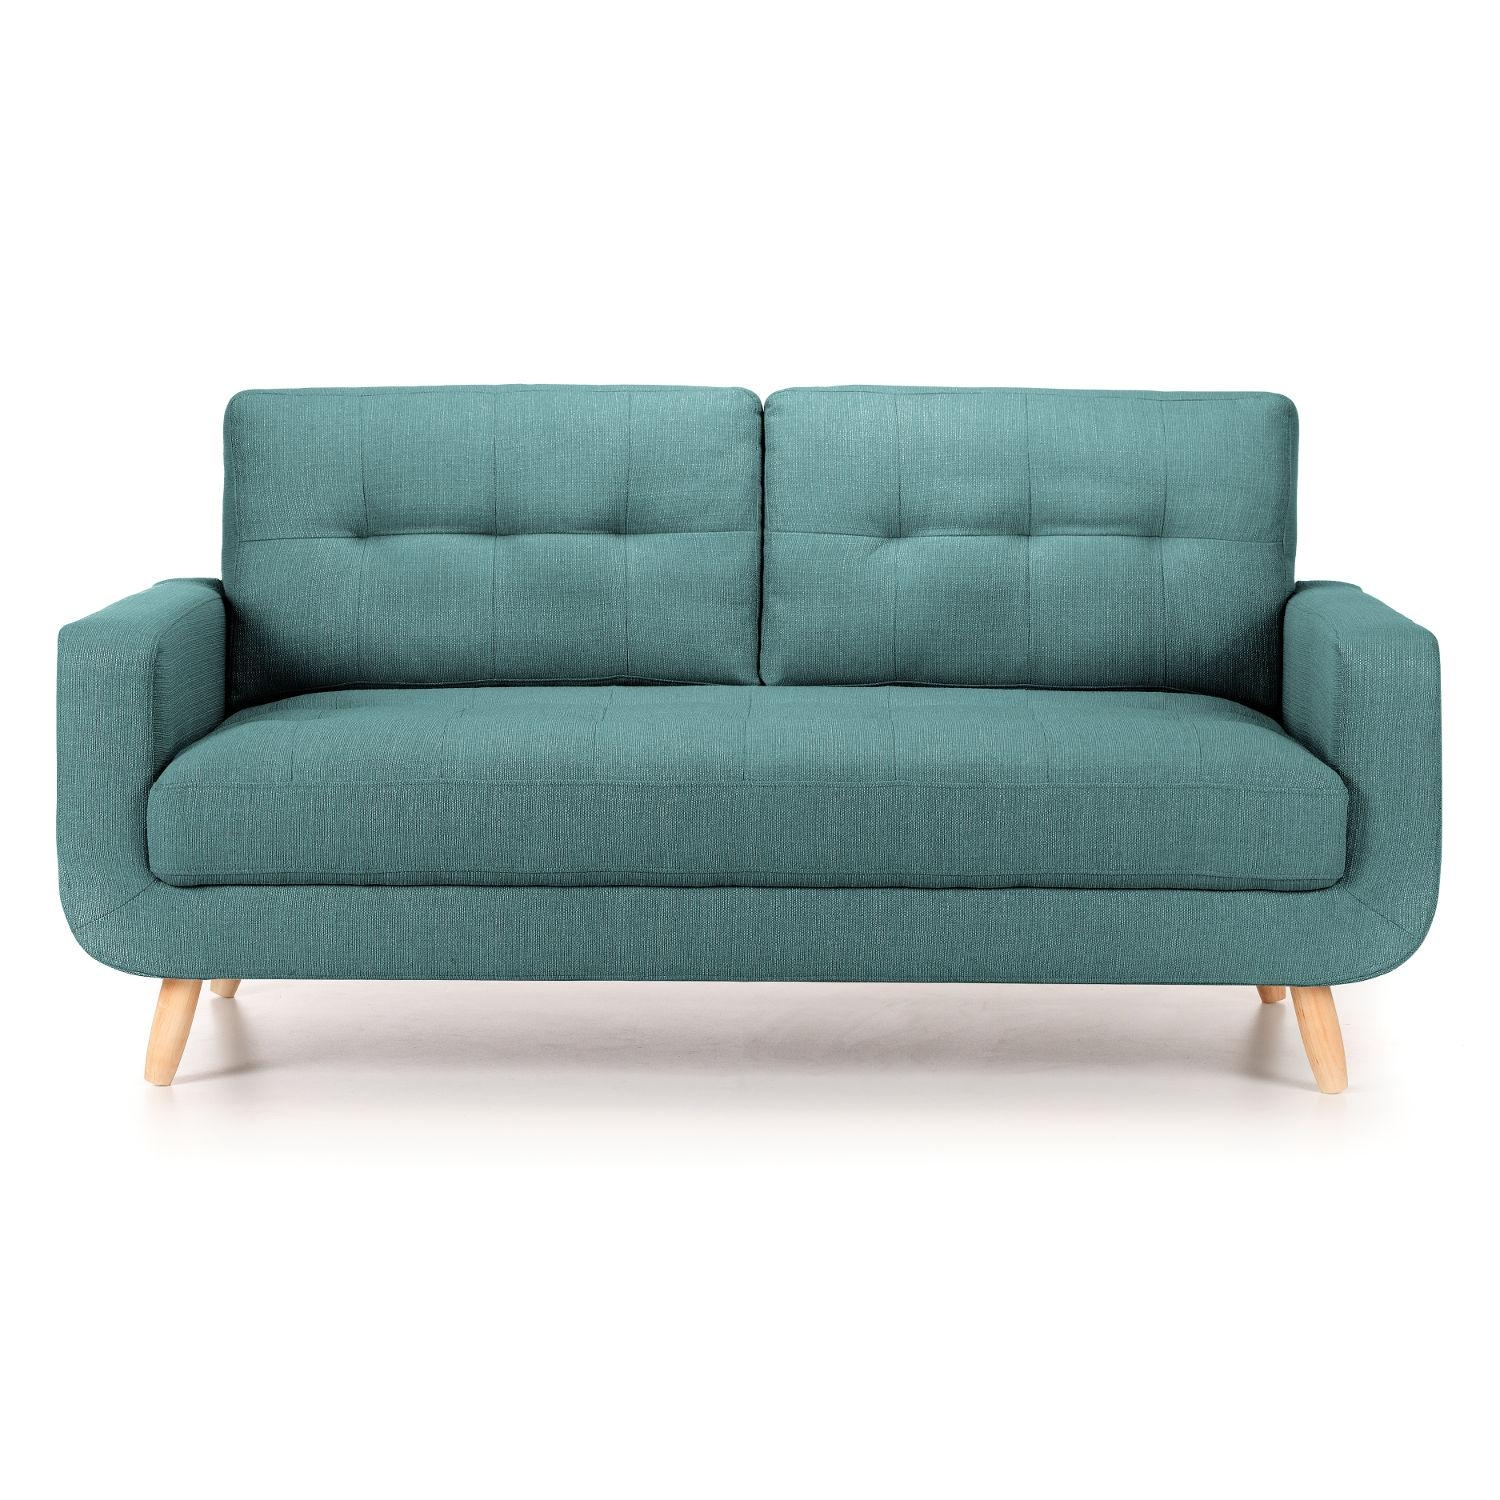 Hockney 3 Seater Fabric Sofa – Next Day Delivery Hockney 3 Seater Intended For Fabric Sofas (View 15 of 20)